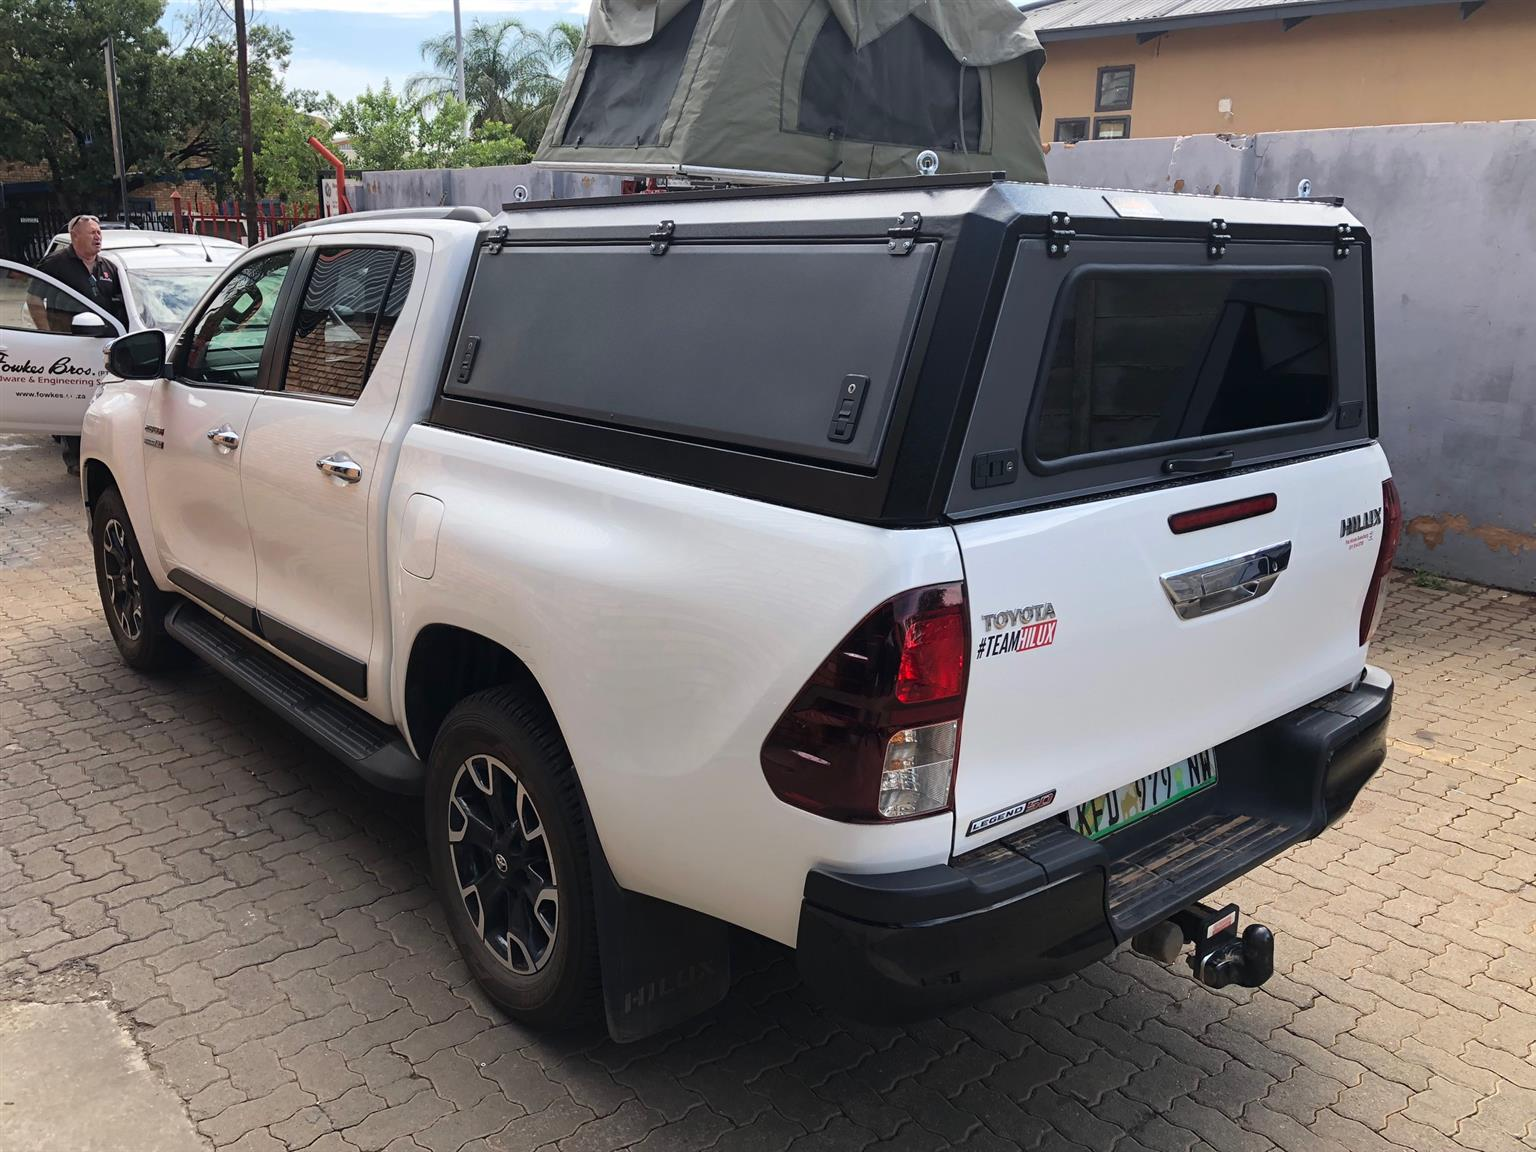 New Custom Leisure Tech ALU/Steel canopy for a Toyota Hilux D/Cab